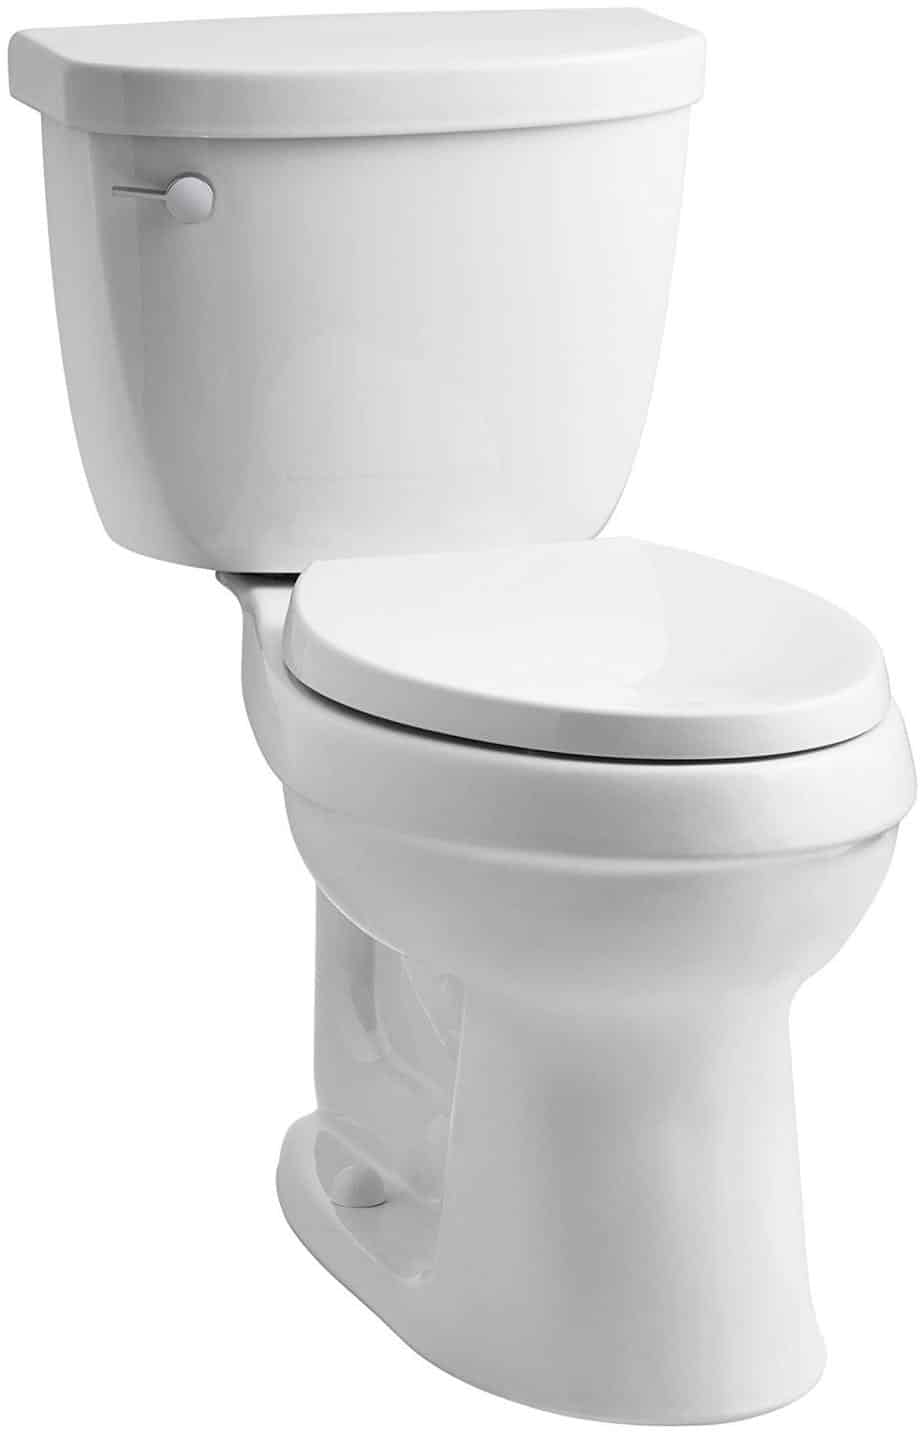 Kohler Cimarron Comfort Height Elongated 1.28 GPF Toilet